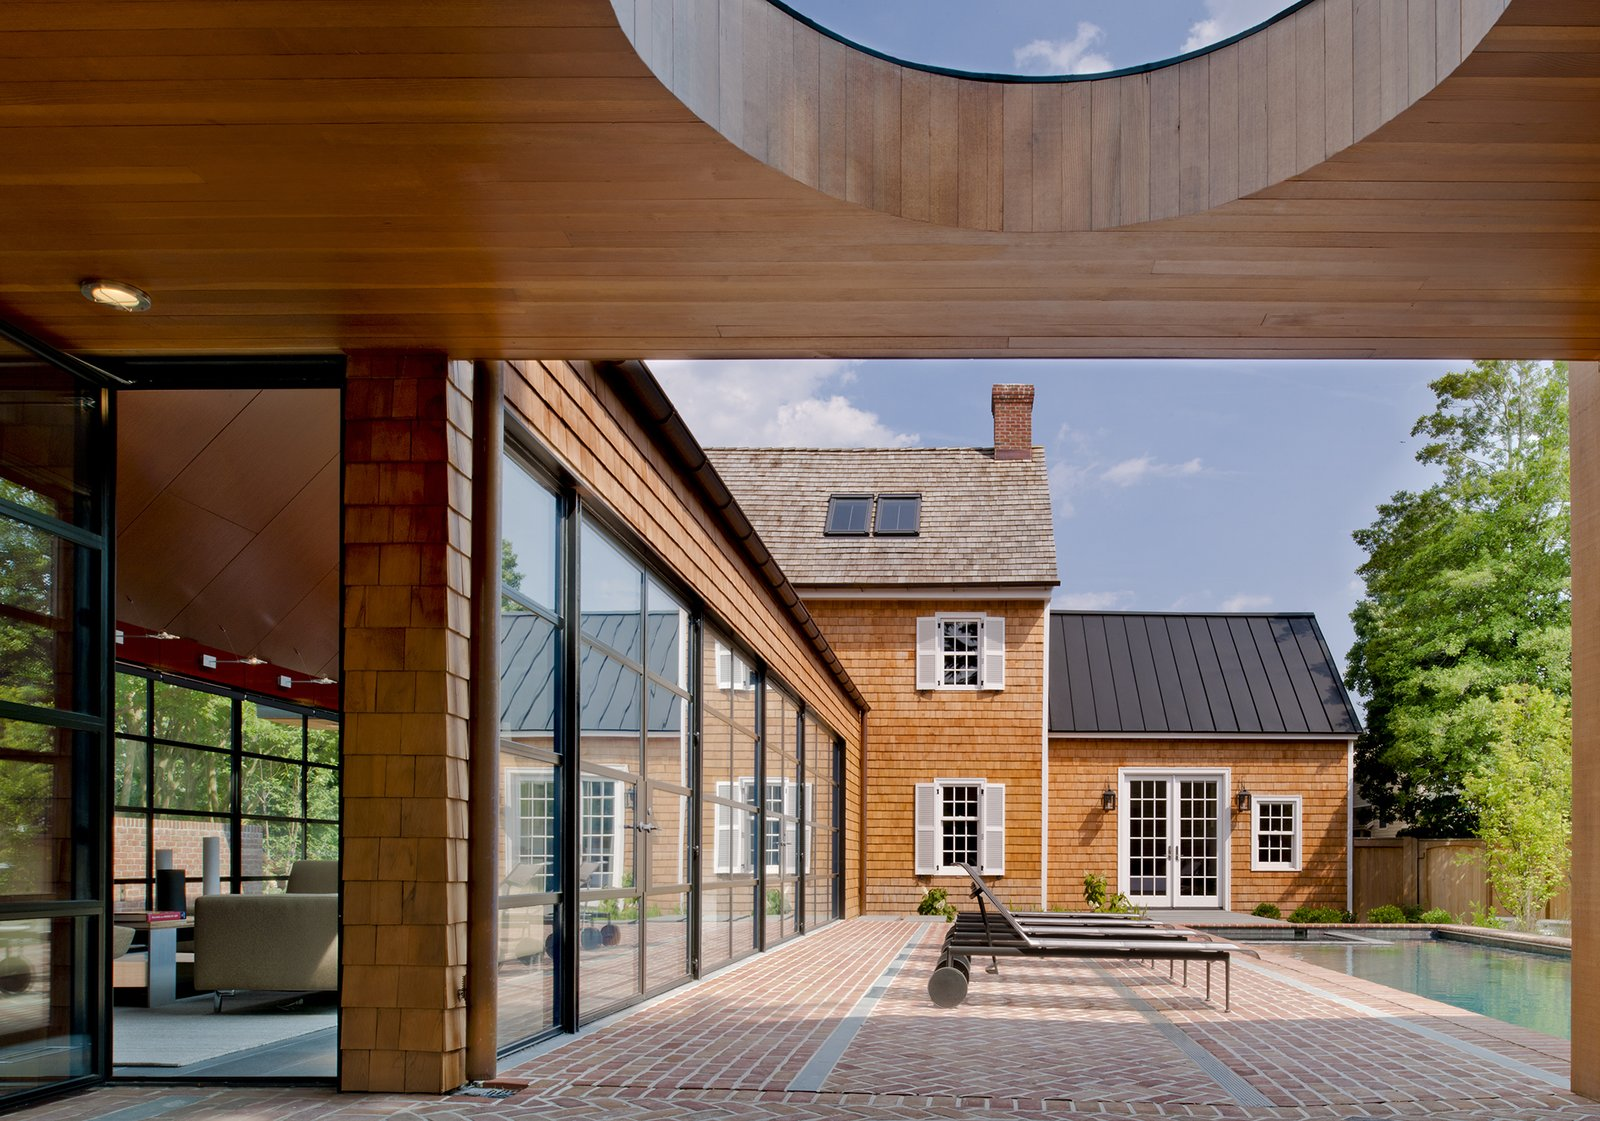 """The client wished to more that double the size of the house,"" Gurney said. ""The goal was to provide the additional space as a series of smaller pavilions to allow the original historical house to be the most important part of the composition."" Steel swing doors by Hope's Windows Inc. lead outside, and a custom standing seam metal roof slopes above the far end of the pool.  Brilliant Examples of Indoor-Outdoor Homes by Zachary Edelson from A Traditional Facade Hides A Light-Filled Modern Delaware Renovation"